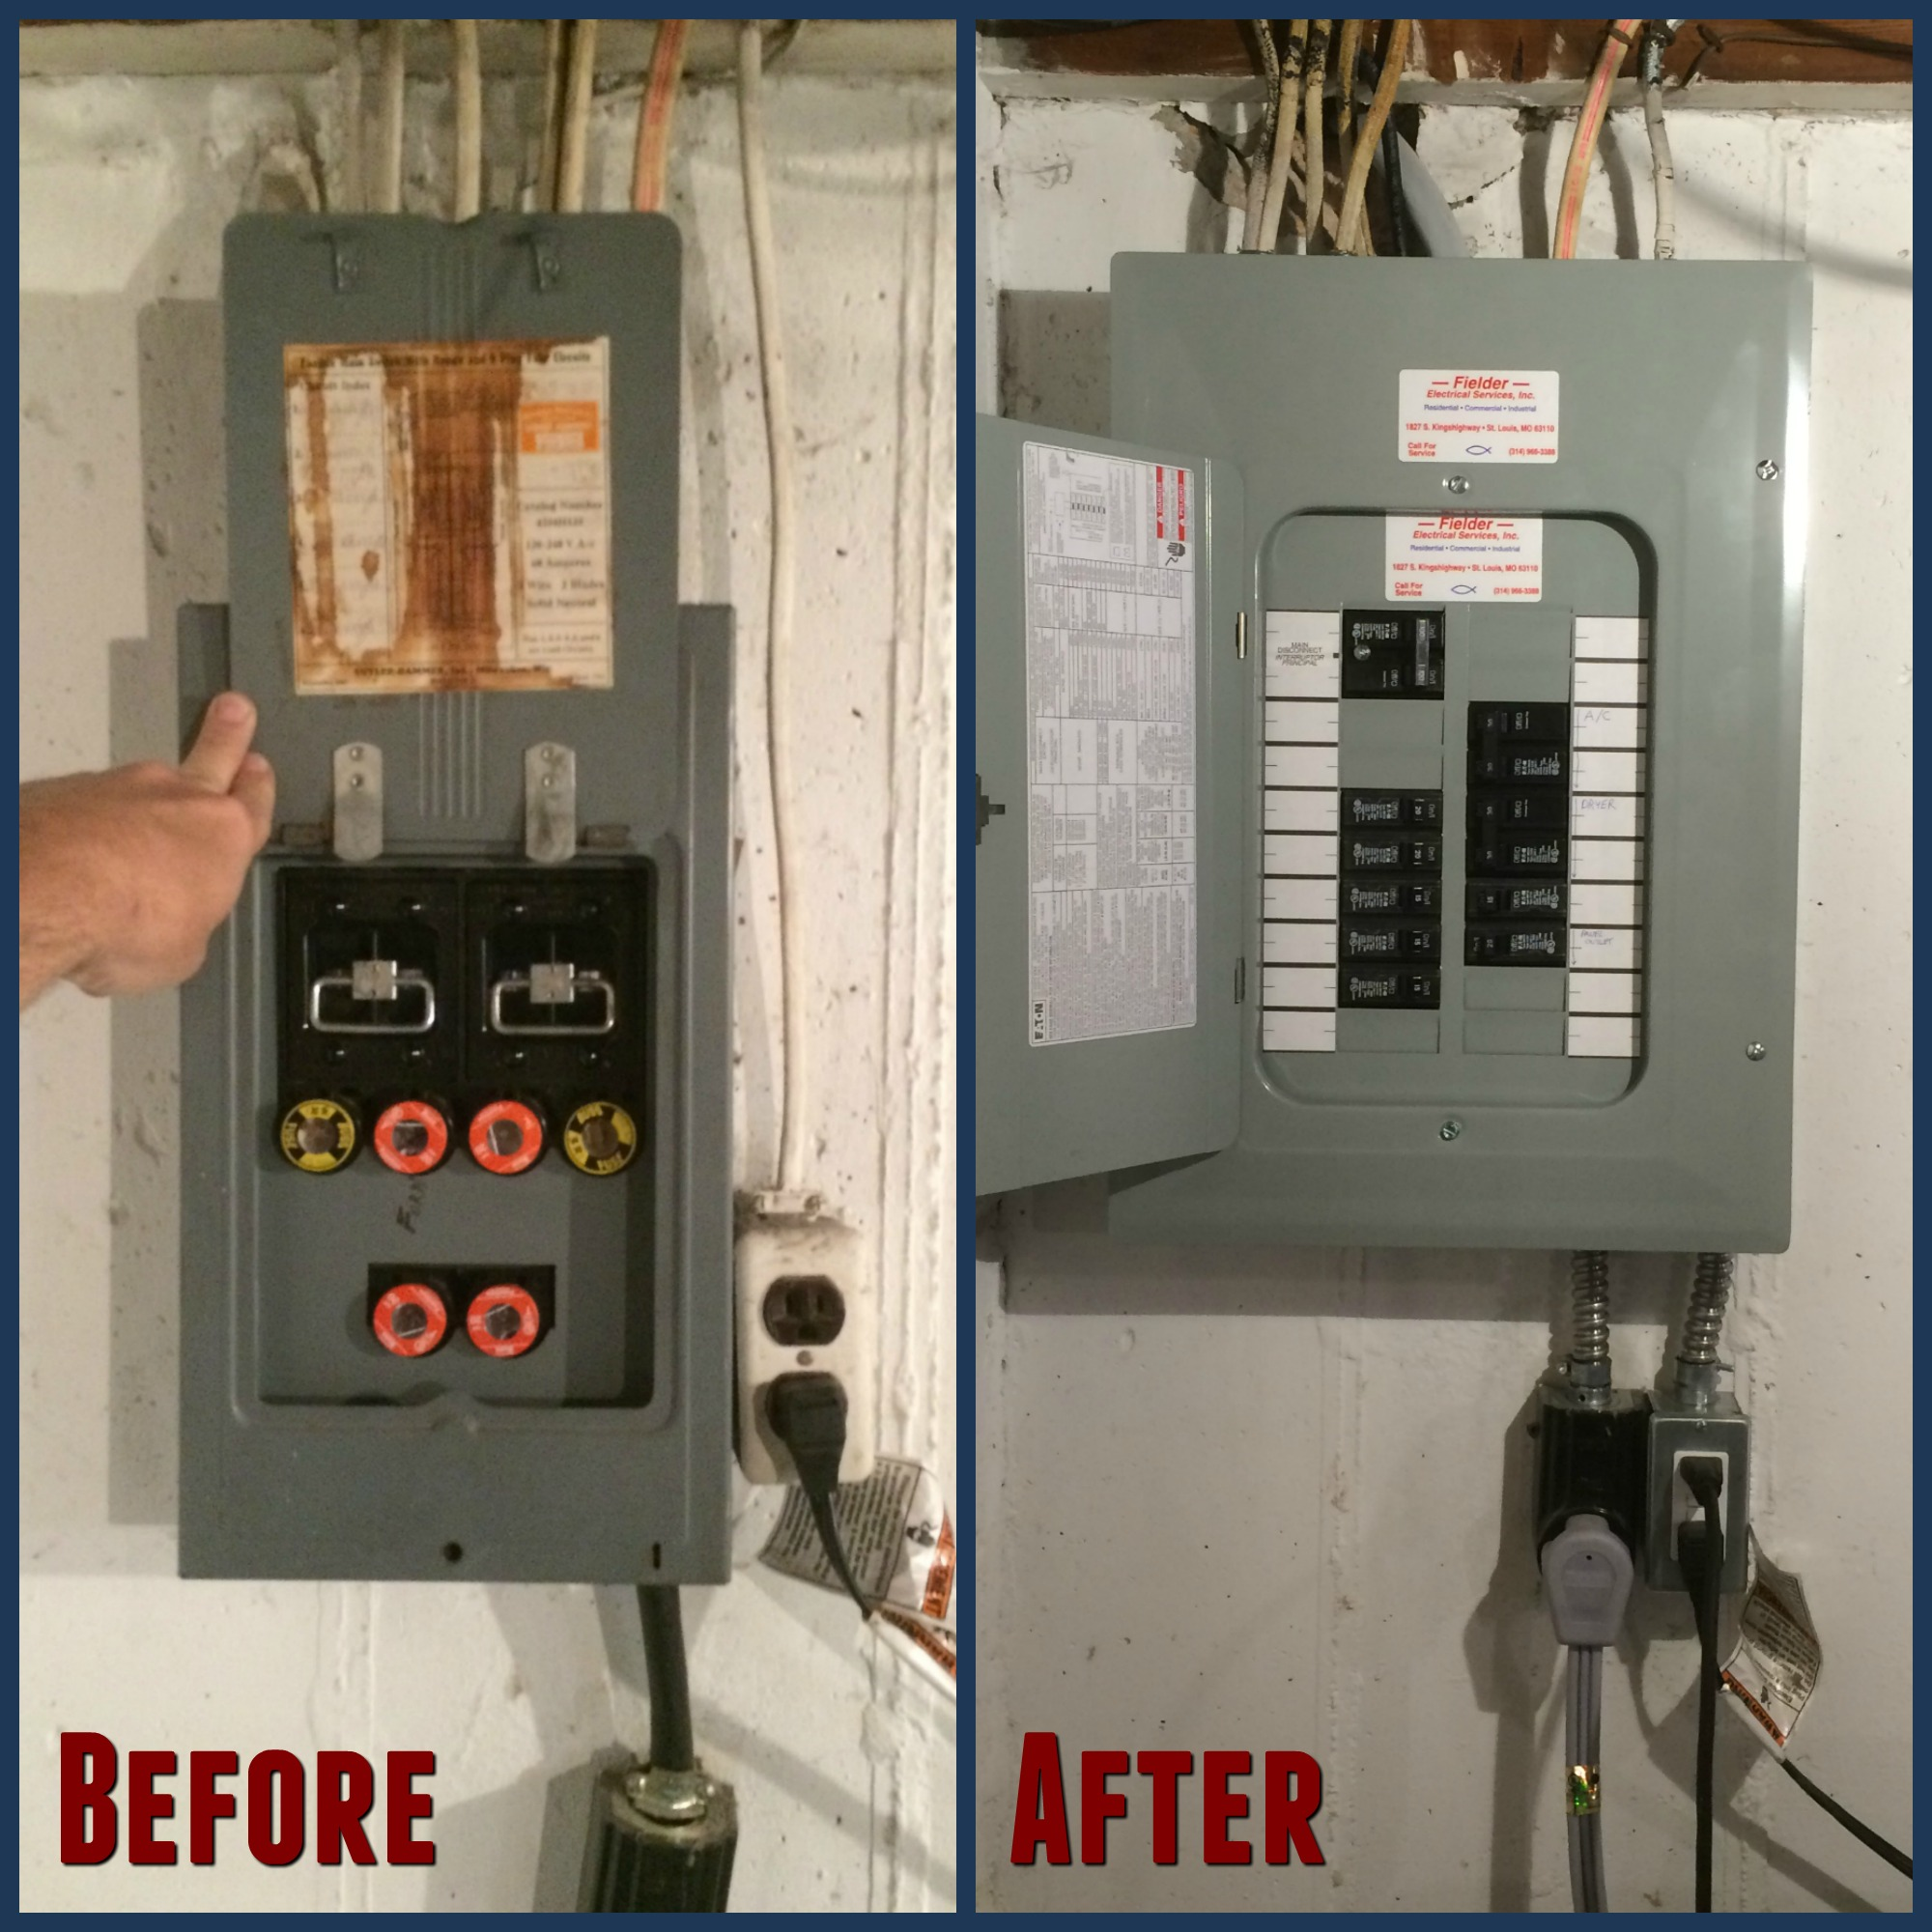 Fuse box replaced with electrical panel fuse box replacement cost simple schematic diagram